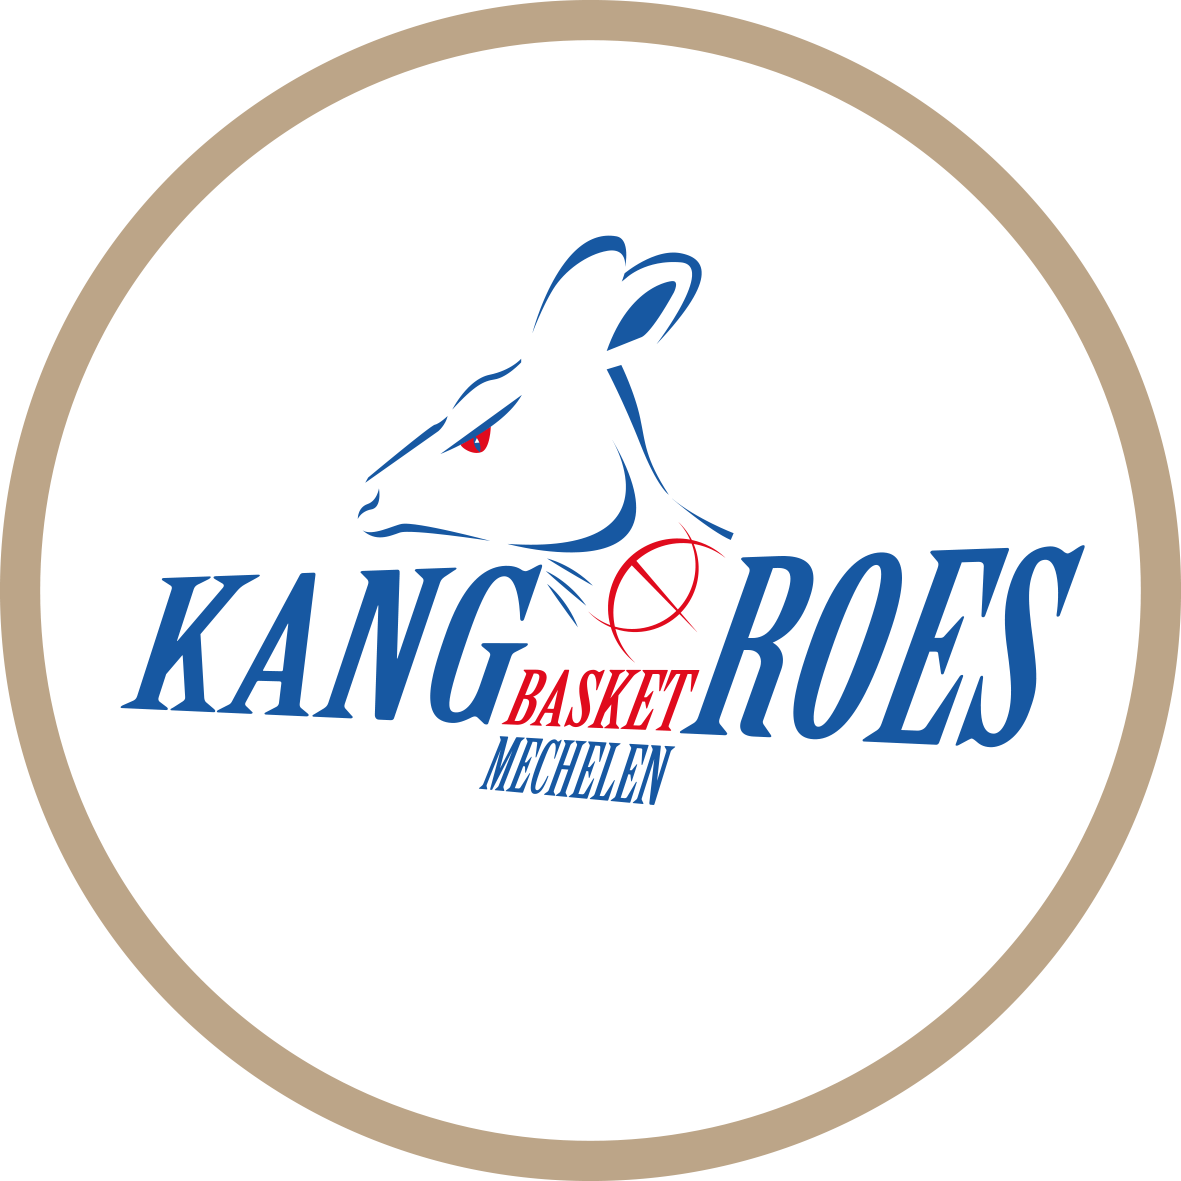 Kangoeroes Basket Willebroek Mechelen